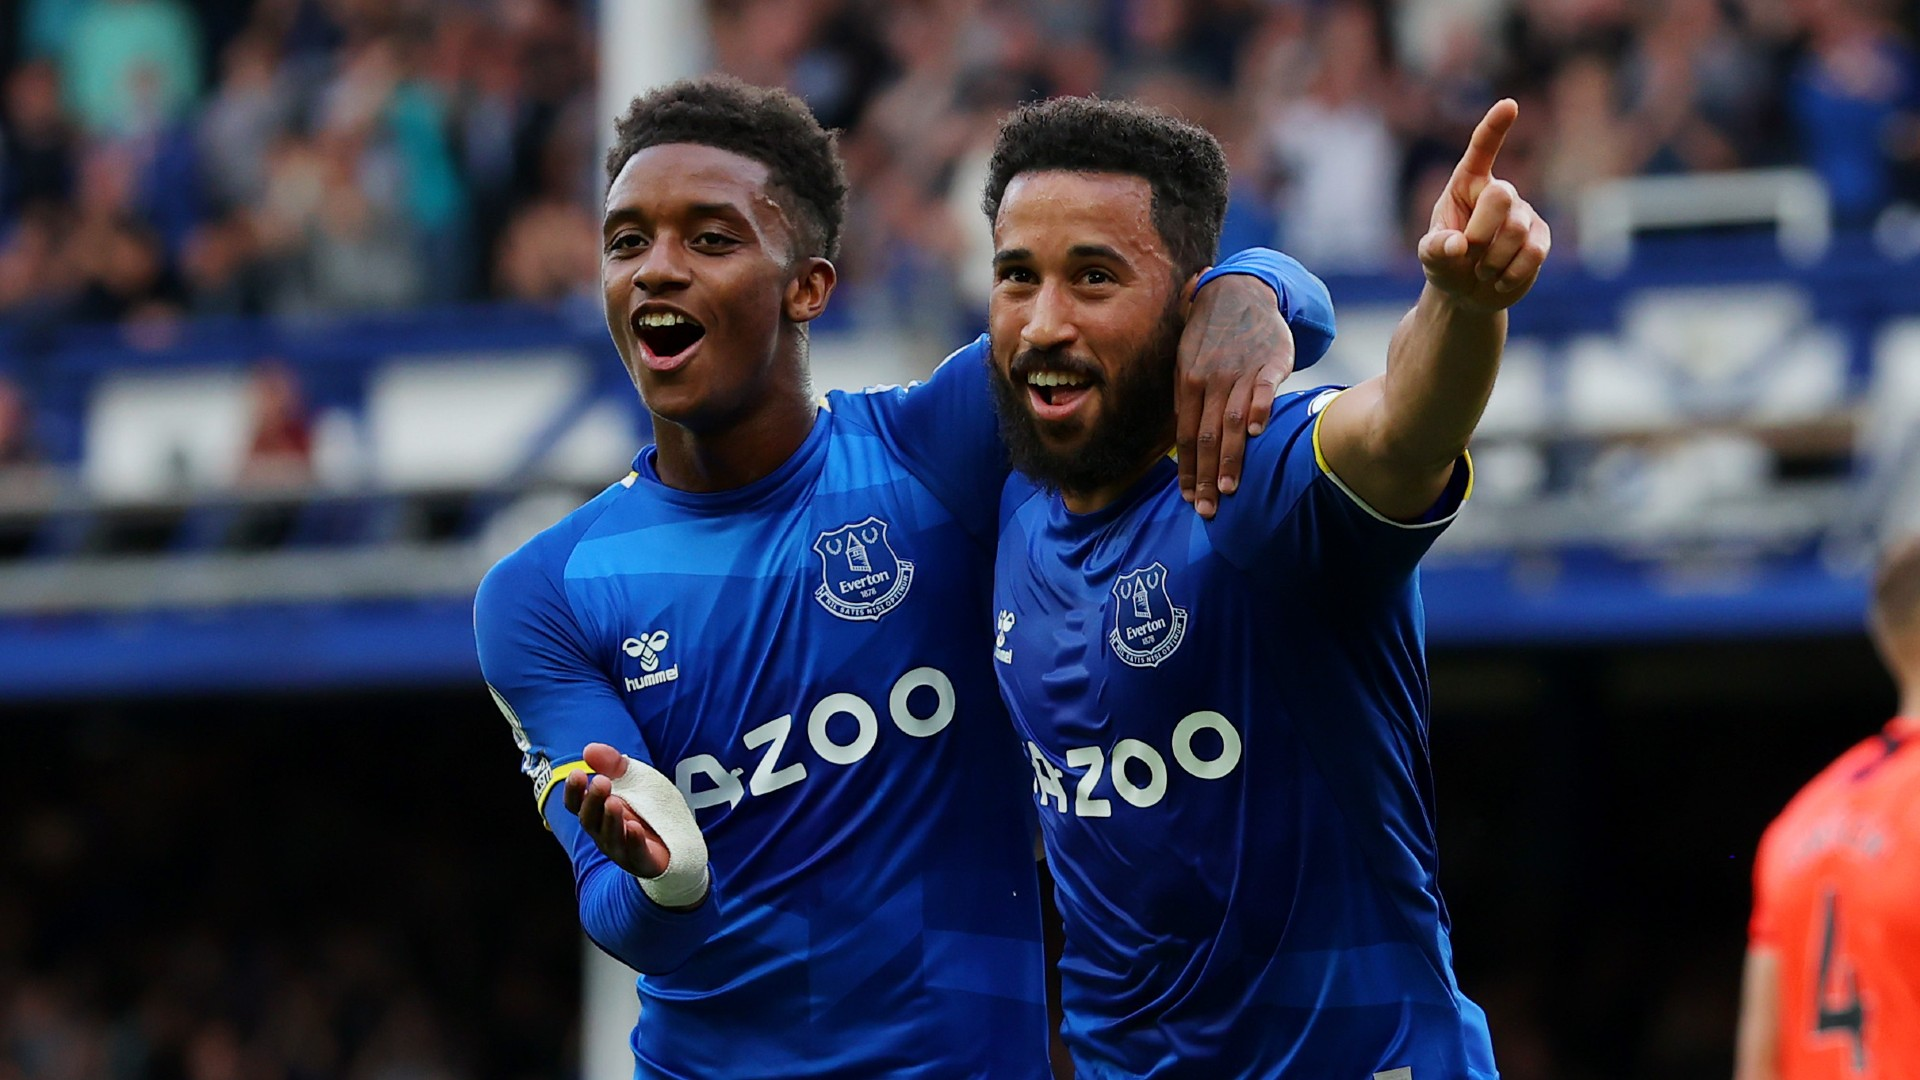 Matchday LIVE: Everton face West Ham, Newcastle host Tottenham, Juventus & Barcelona also in action